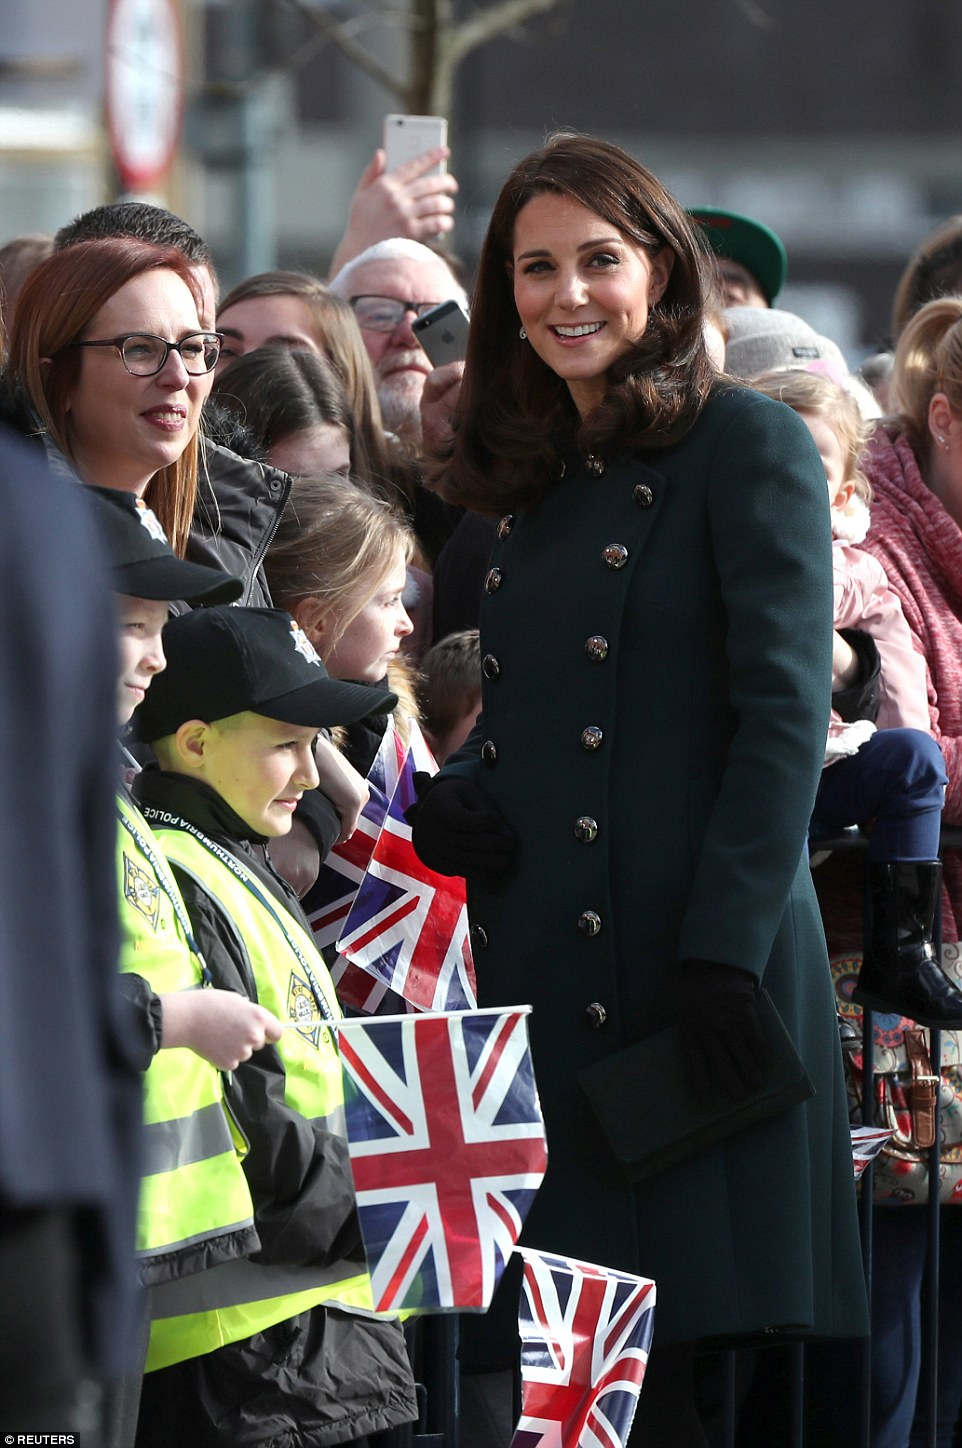 The Duchess of Cambridge showcased her blossoming baby bump in a forest green Dolce & Gabbana coat during a visit to Sunderland on Wednesday